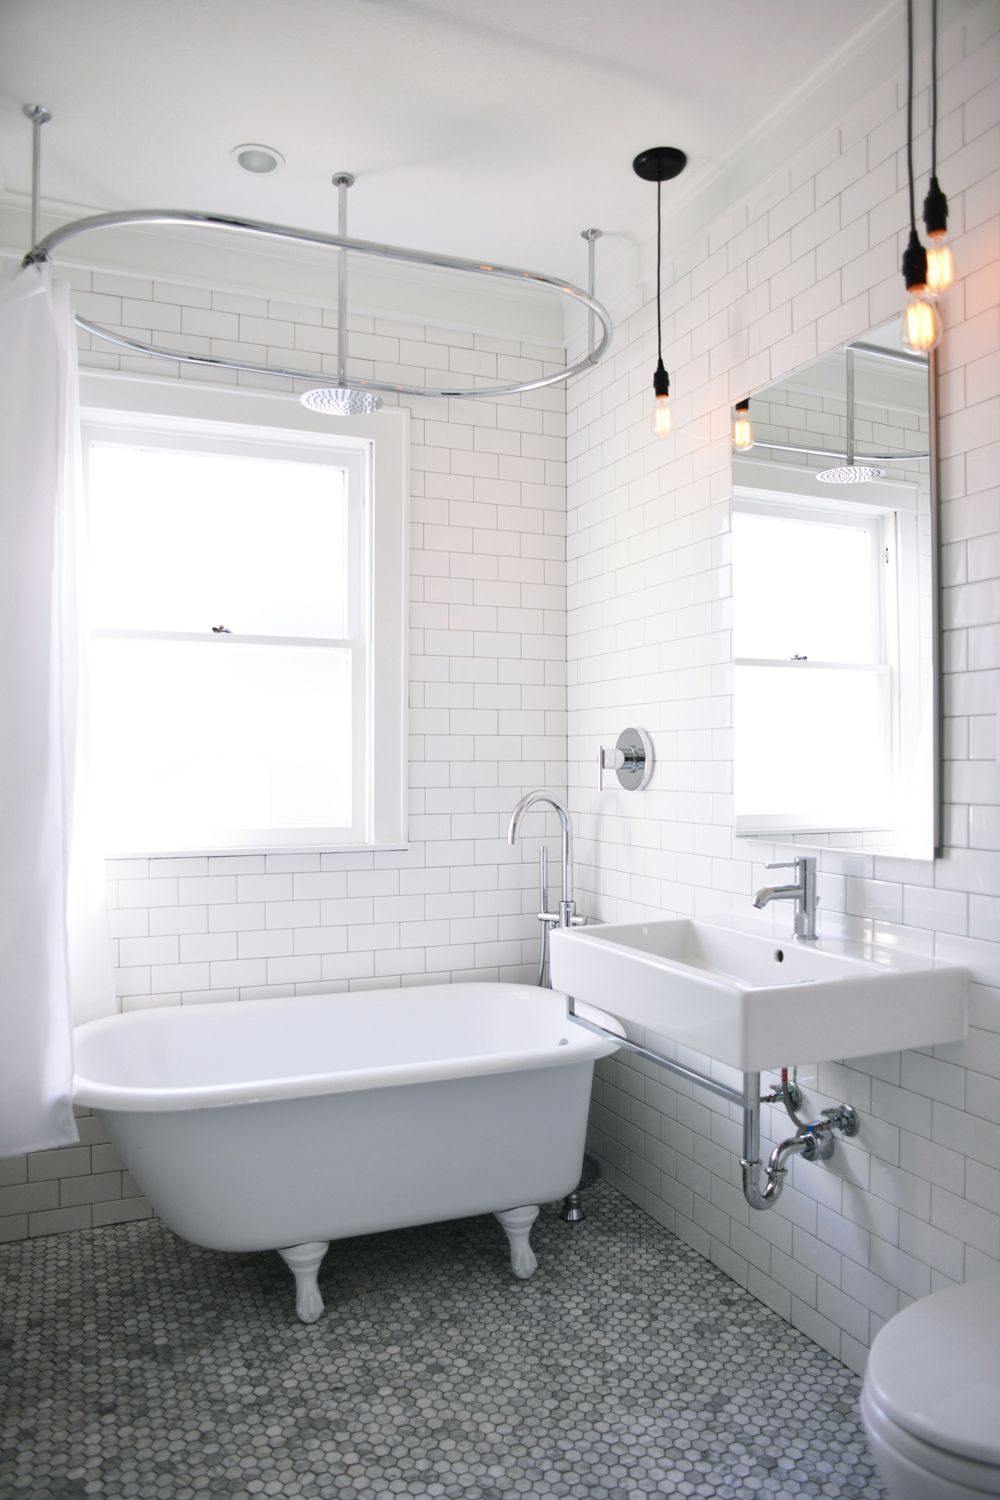 Brunswick Bathroom Renovation: For The Home In 2019